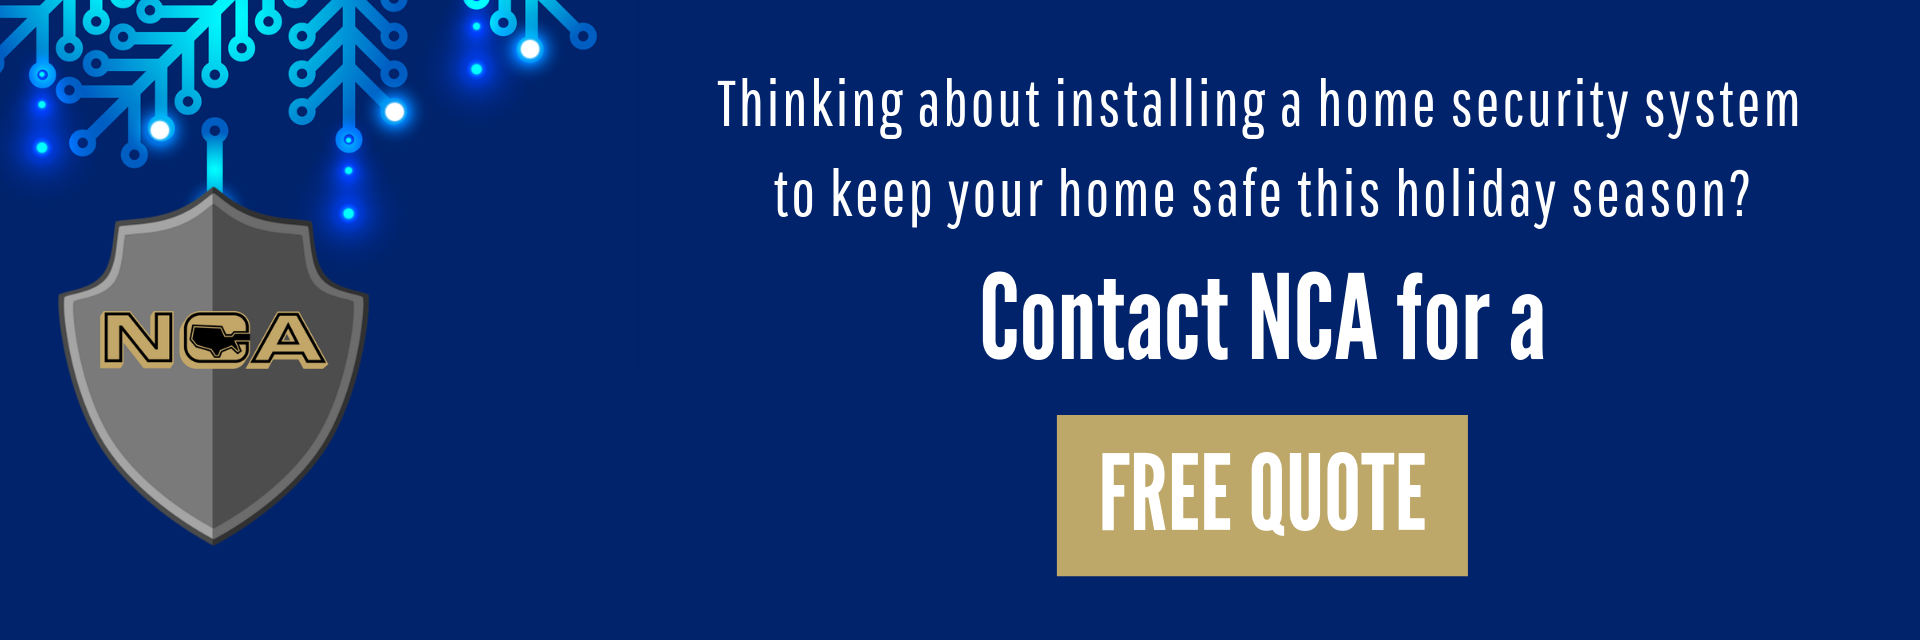 Holiday Free Quote NCA Alarms